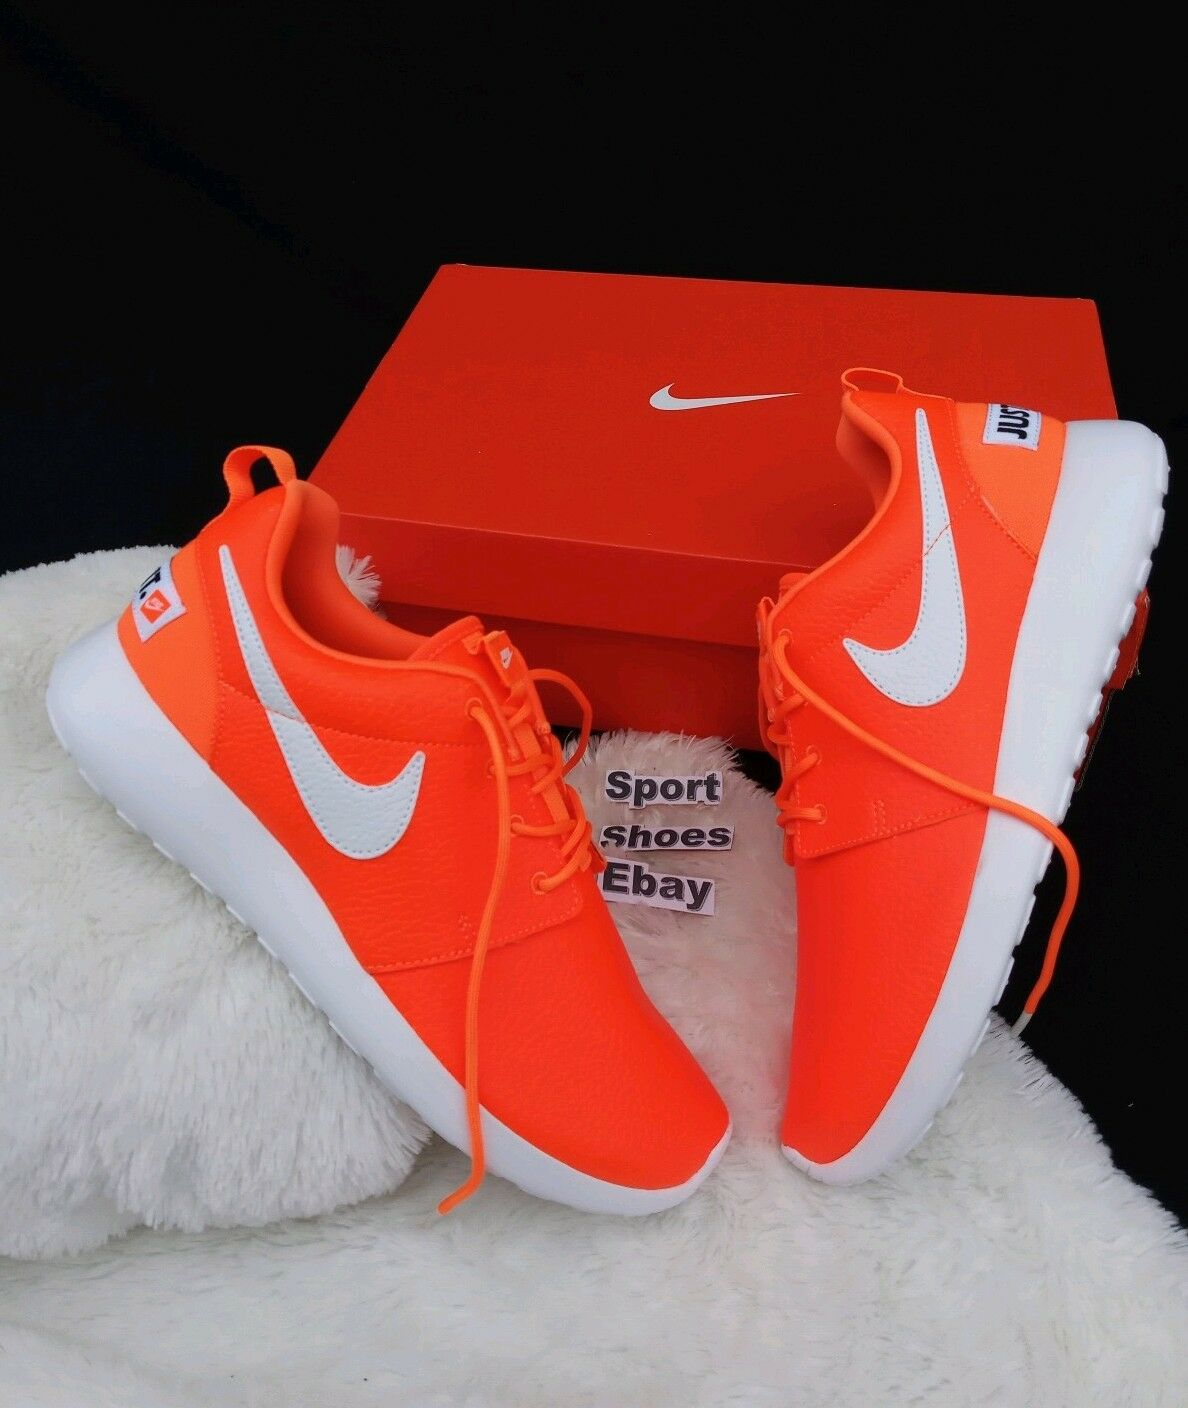 11 WOMEN'S Nike Roshe One Premium Just Do It 833928-800 orange NEON  RUNNING